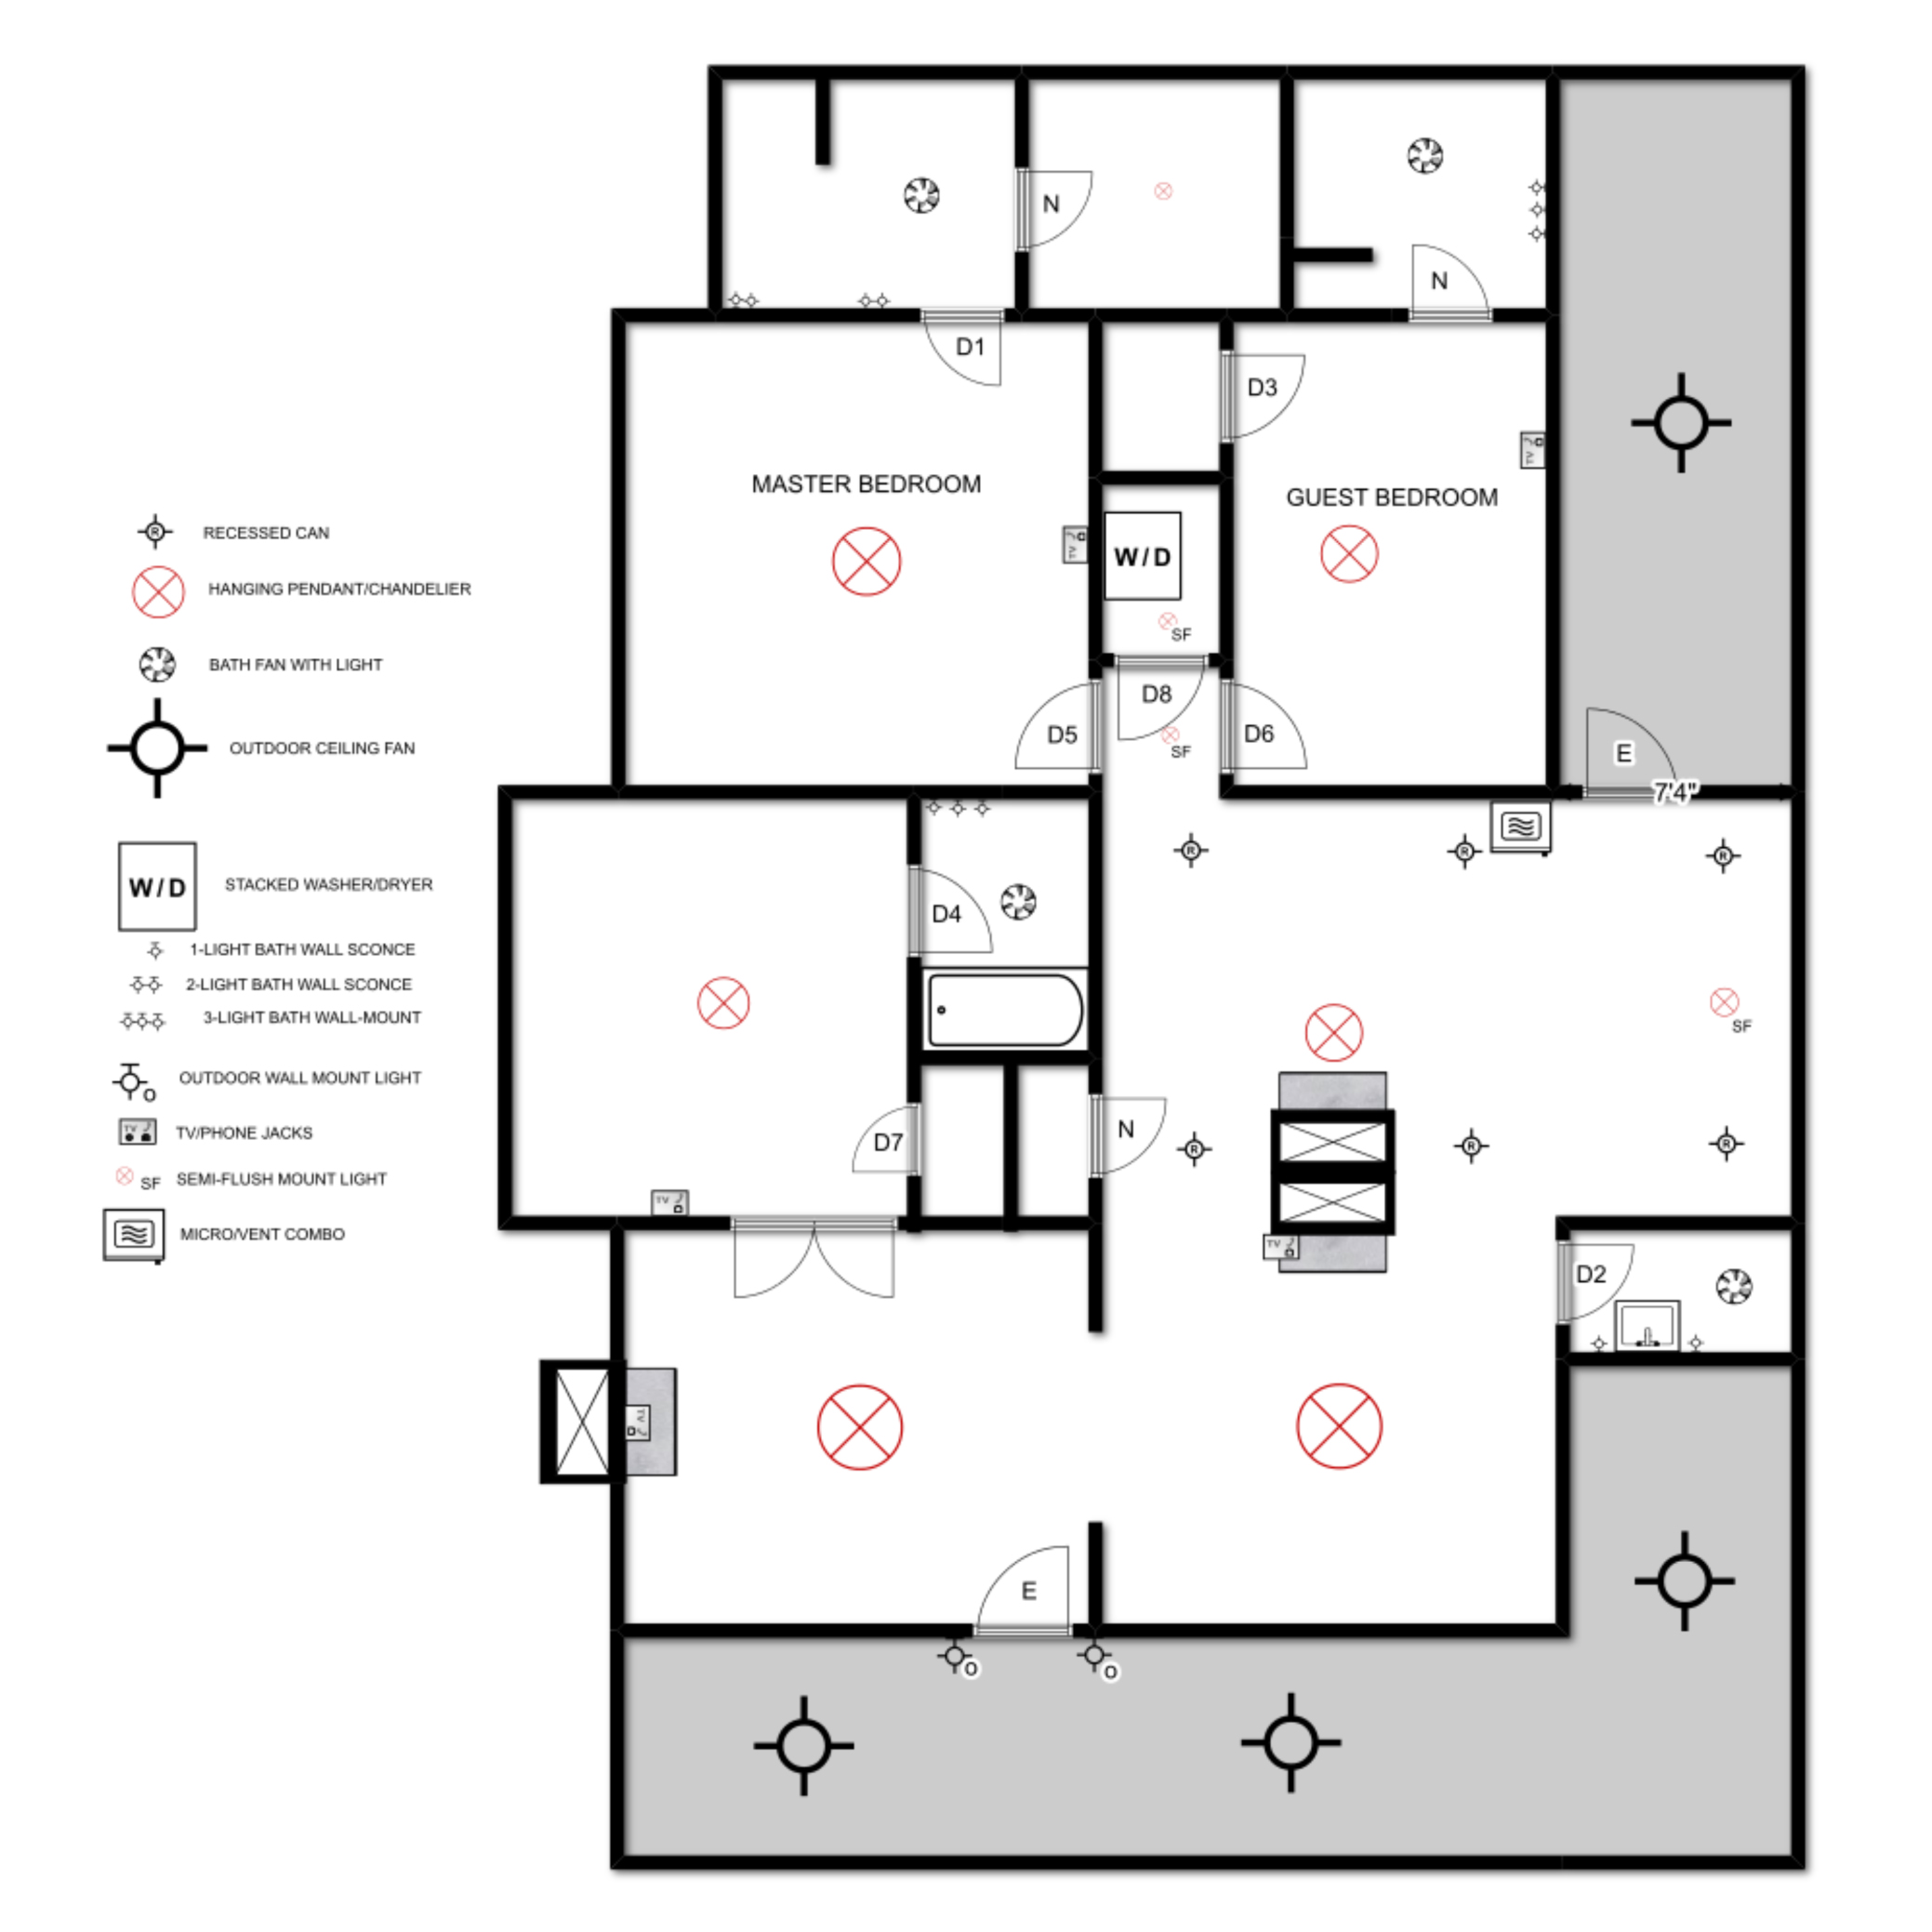 house electrical wiring diagram in india for home inverter best library design online residential diagrams